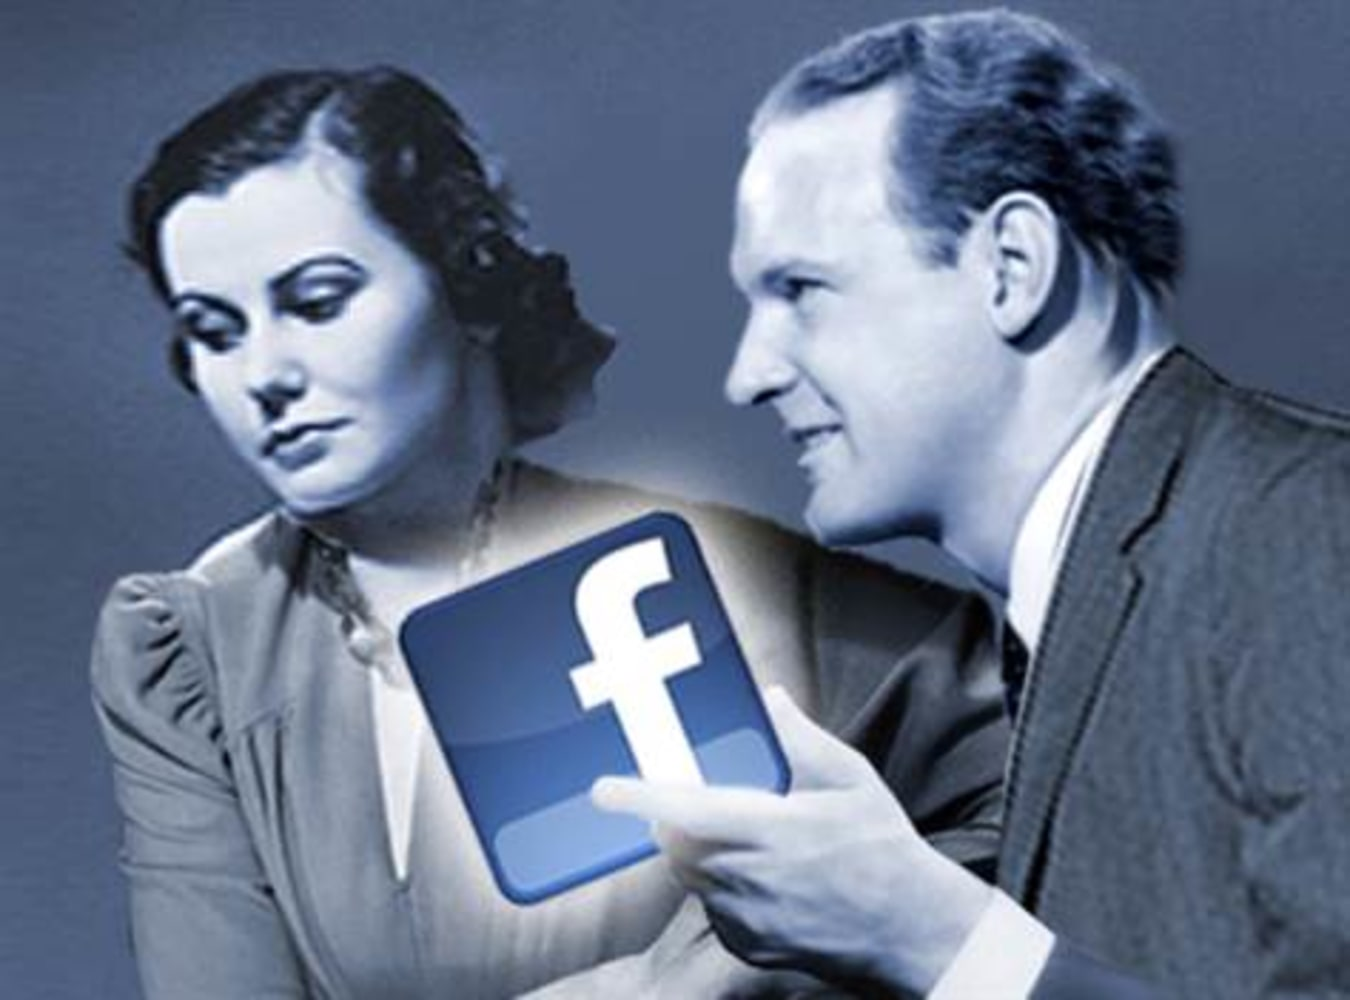 Amid privacy flap, Facebook delays new user policy